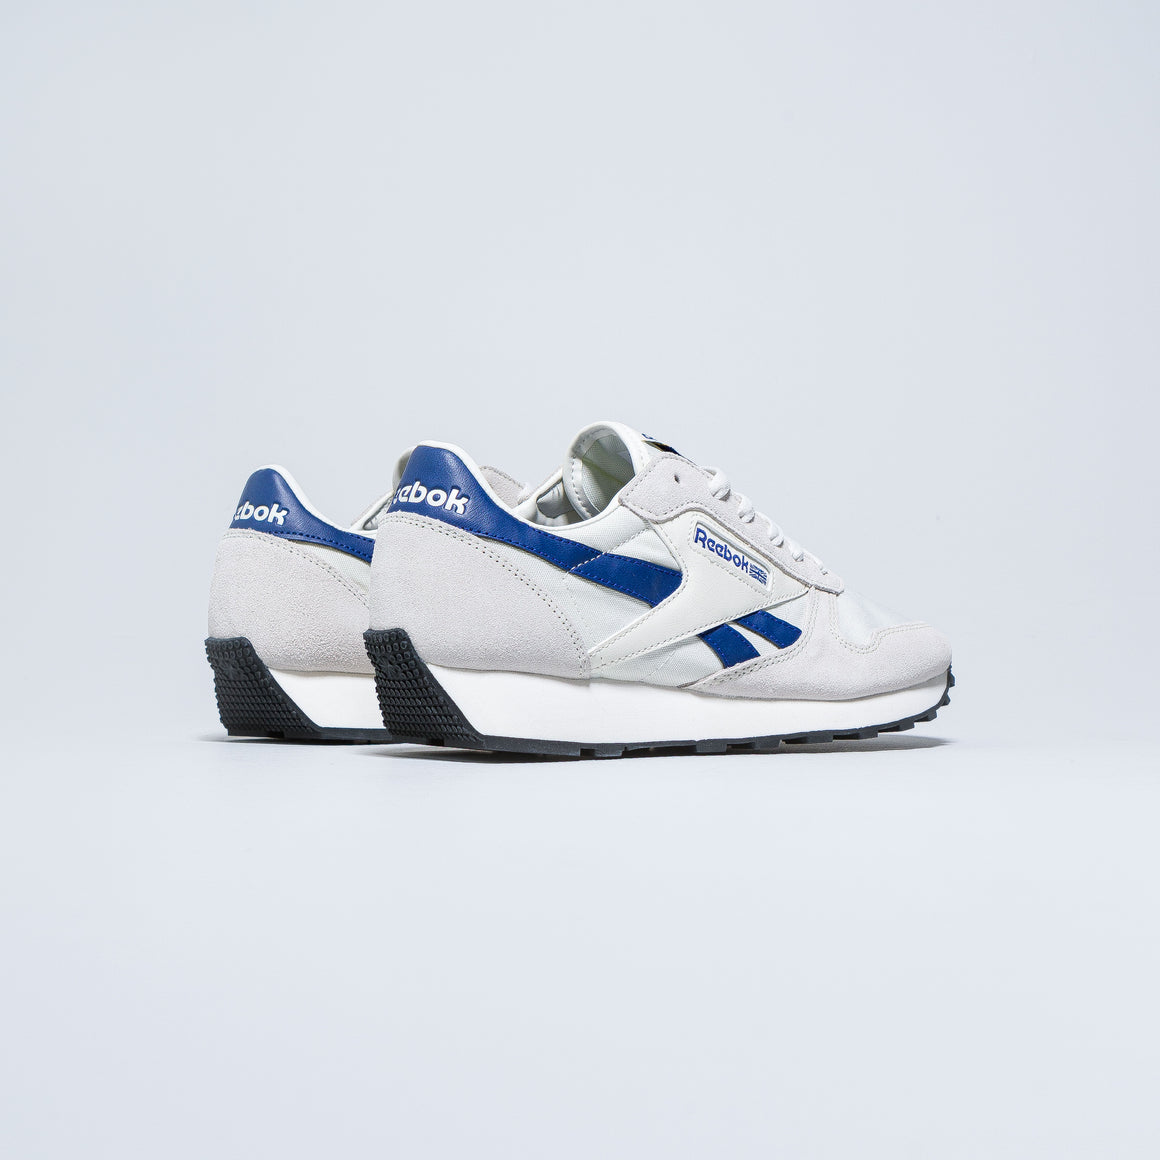 Reebok - CL Leather AZ - Chalk/Deep Cobalt - Up There